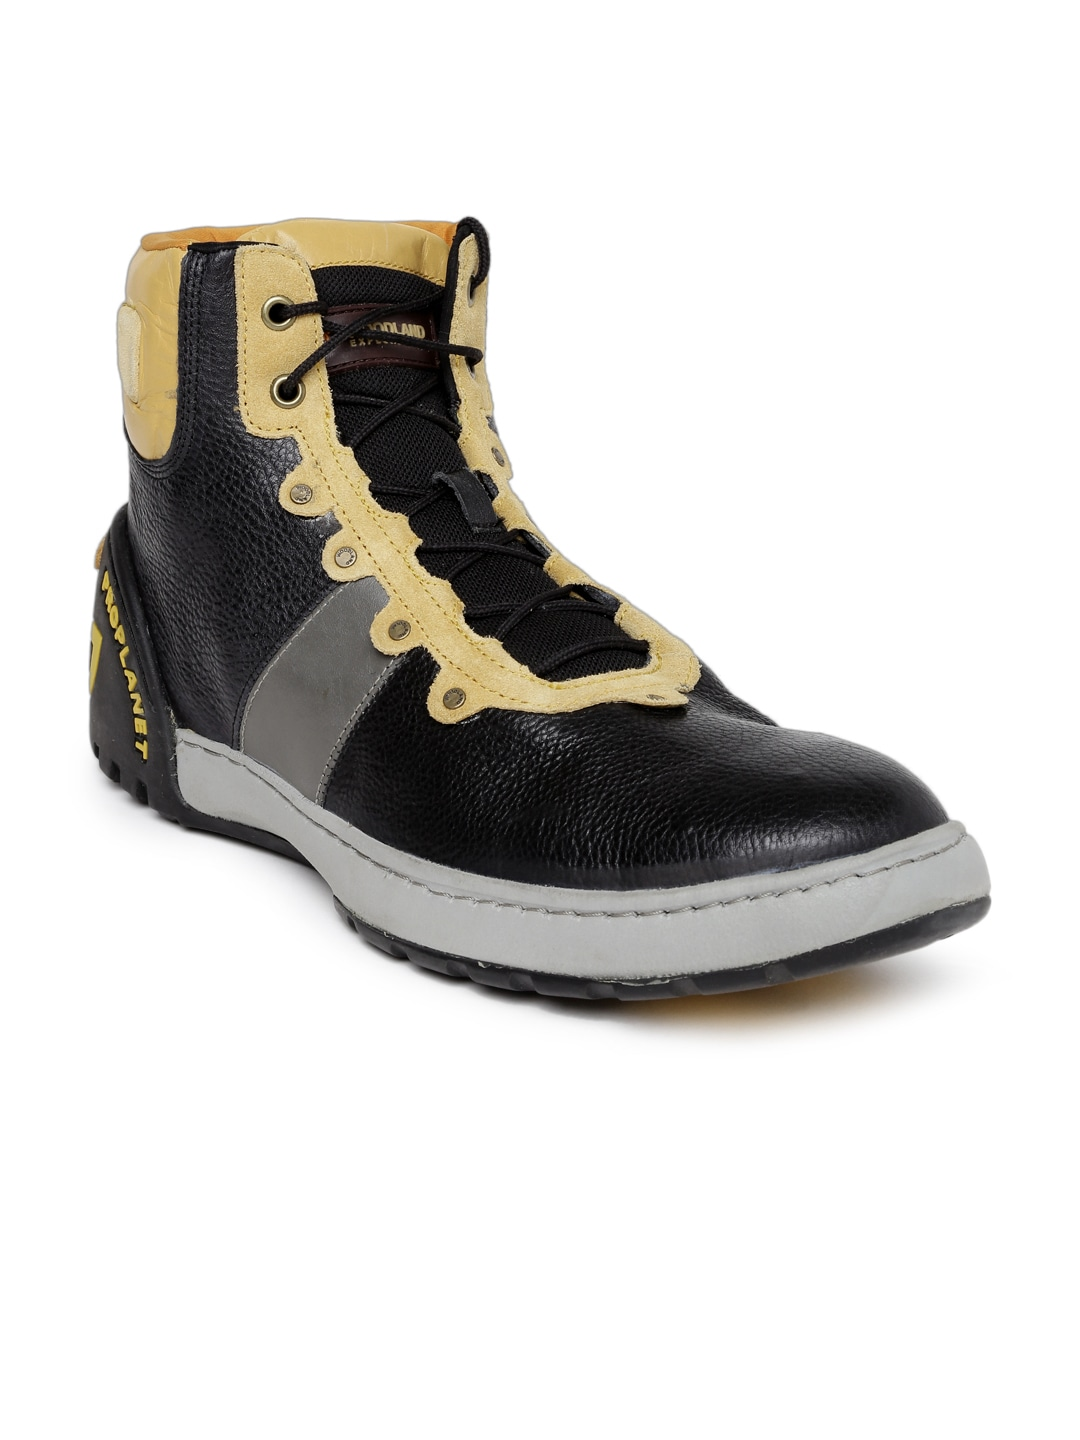 To acquire Shoes Woodland black with price picture trends